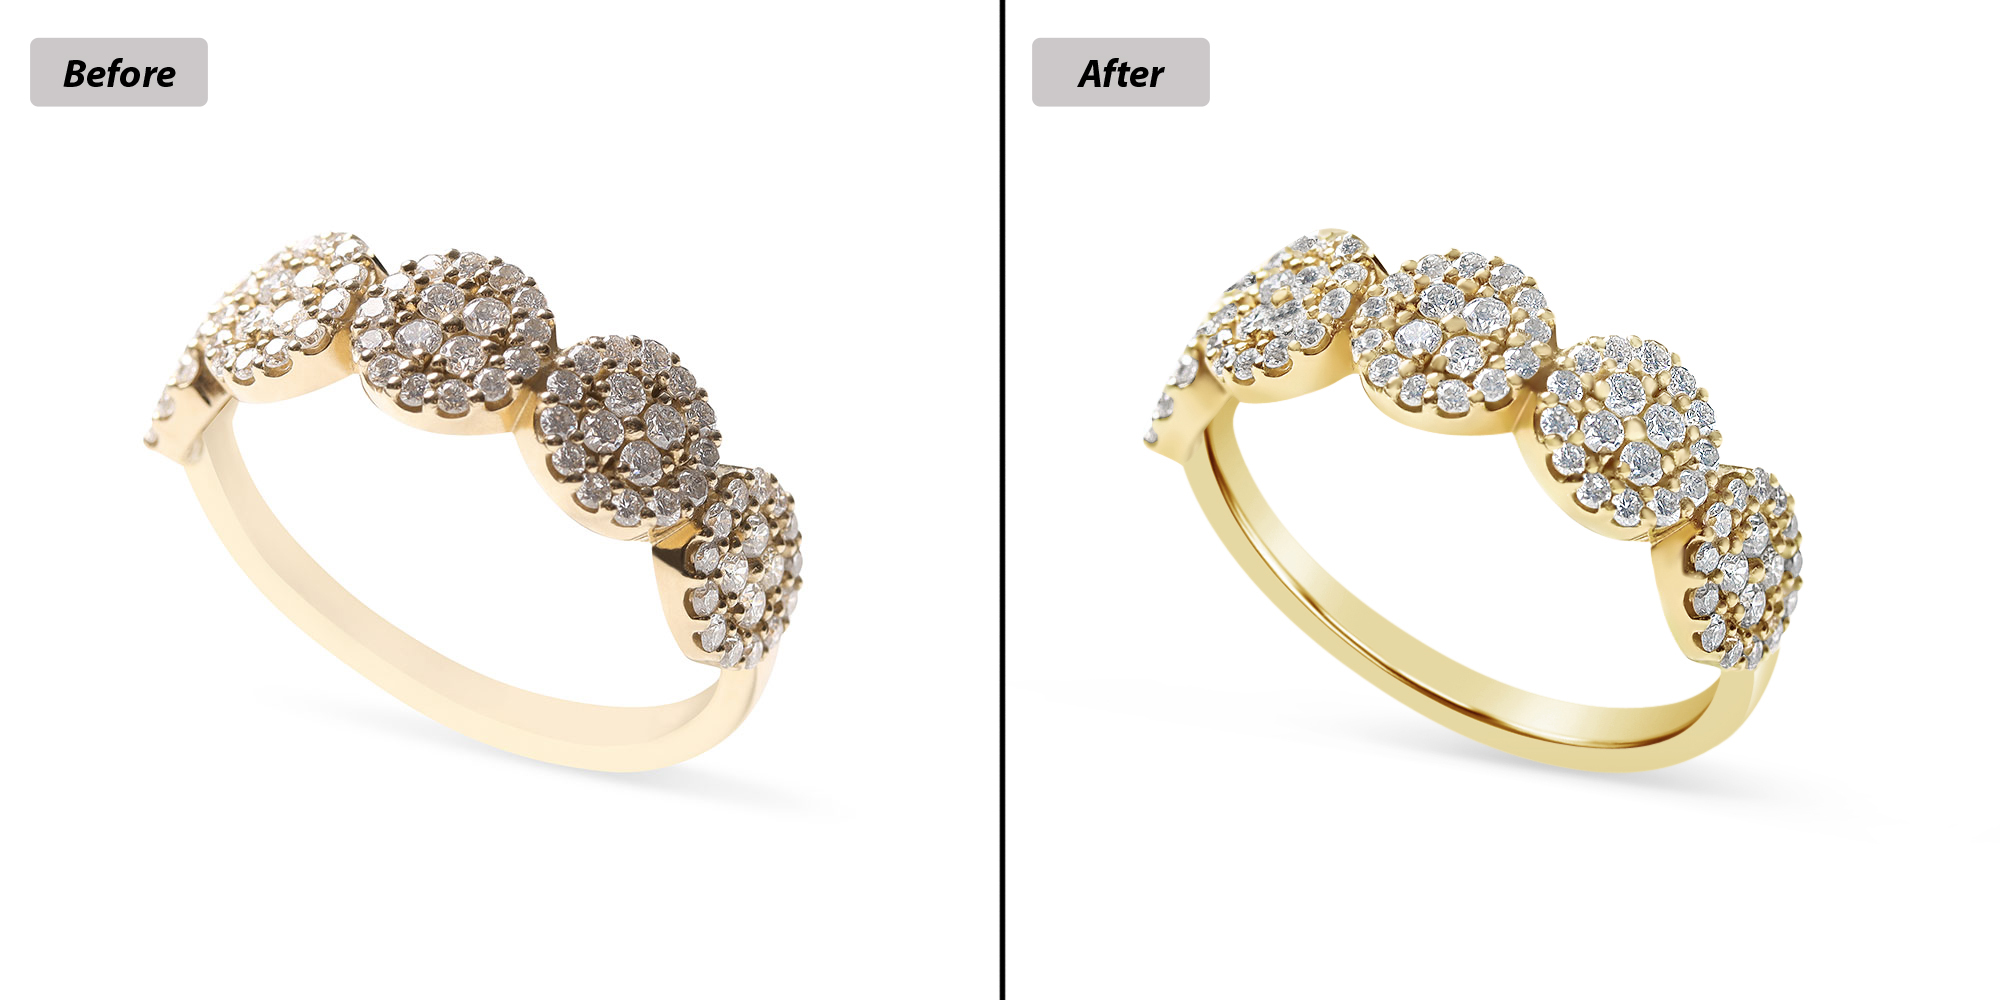 Clipping Charm_jewellery retouch 019